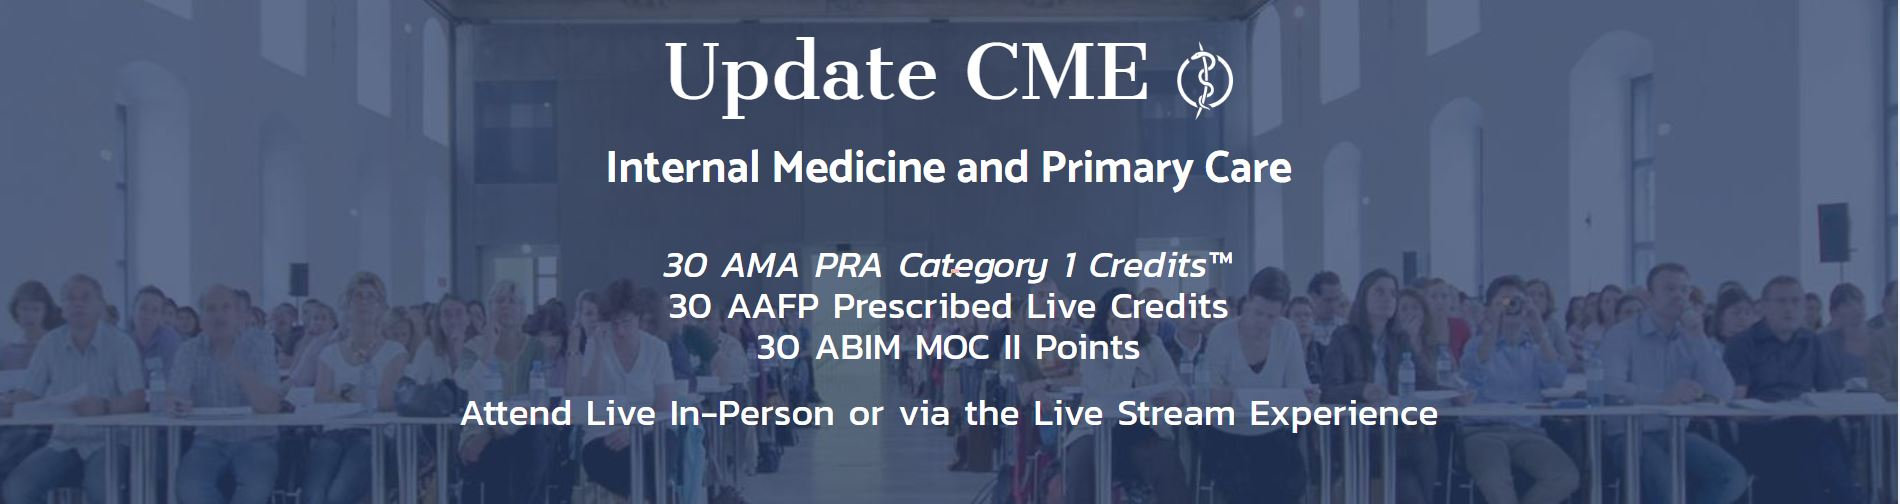 AMF-CME